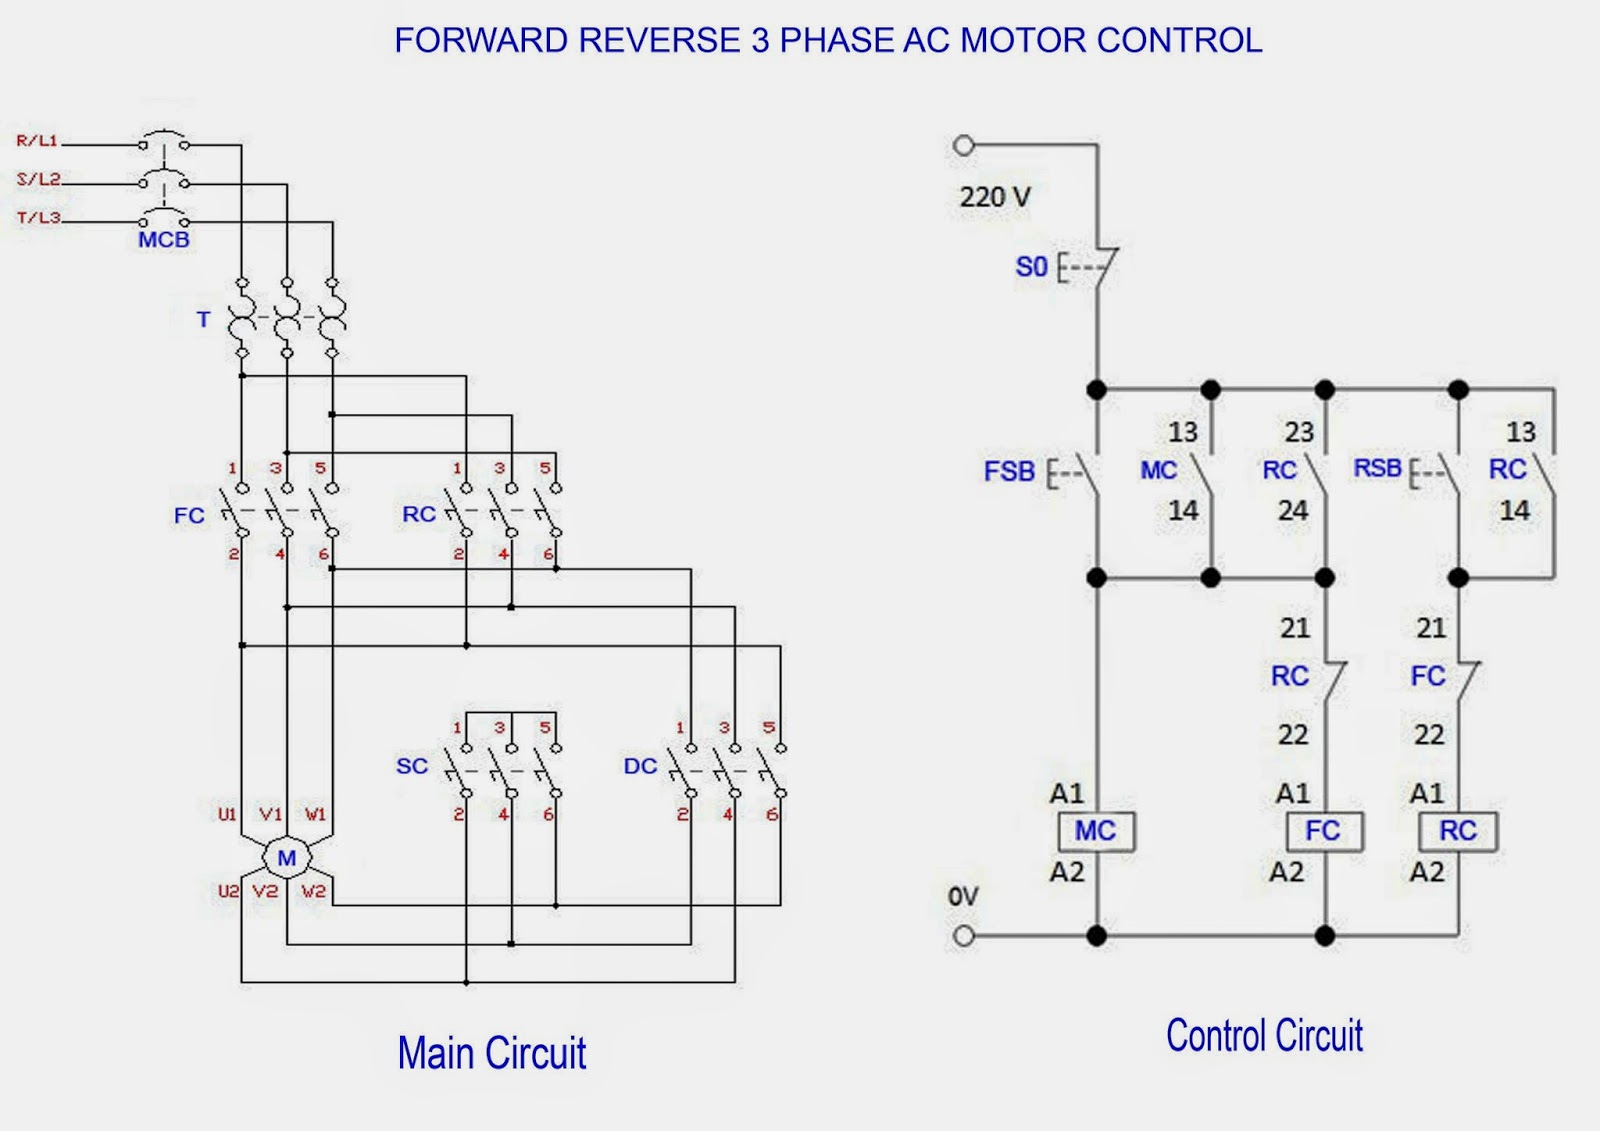 Wiring Diagram Trane Split System as well Wiring moreover Single Phase Autotransformer Wiring Diagram likewise Forward Reverse 3 Phase Ac Motor also Ac Generator Voltage Wiring Diagram. on ac electrical circuit diagrams